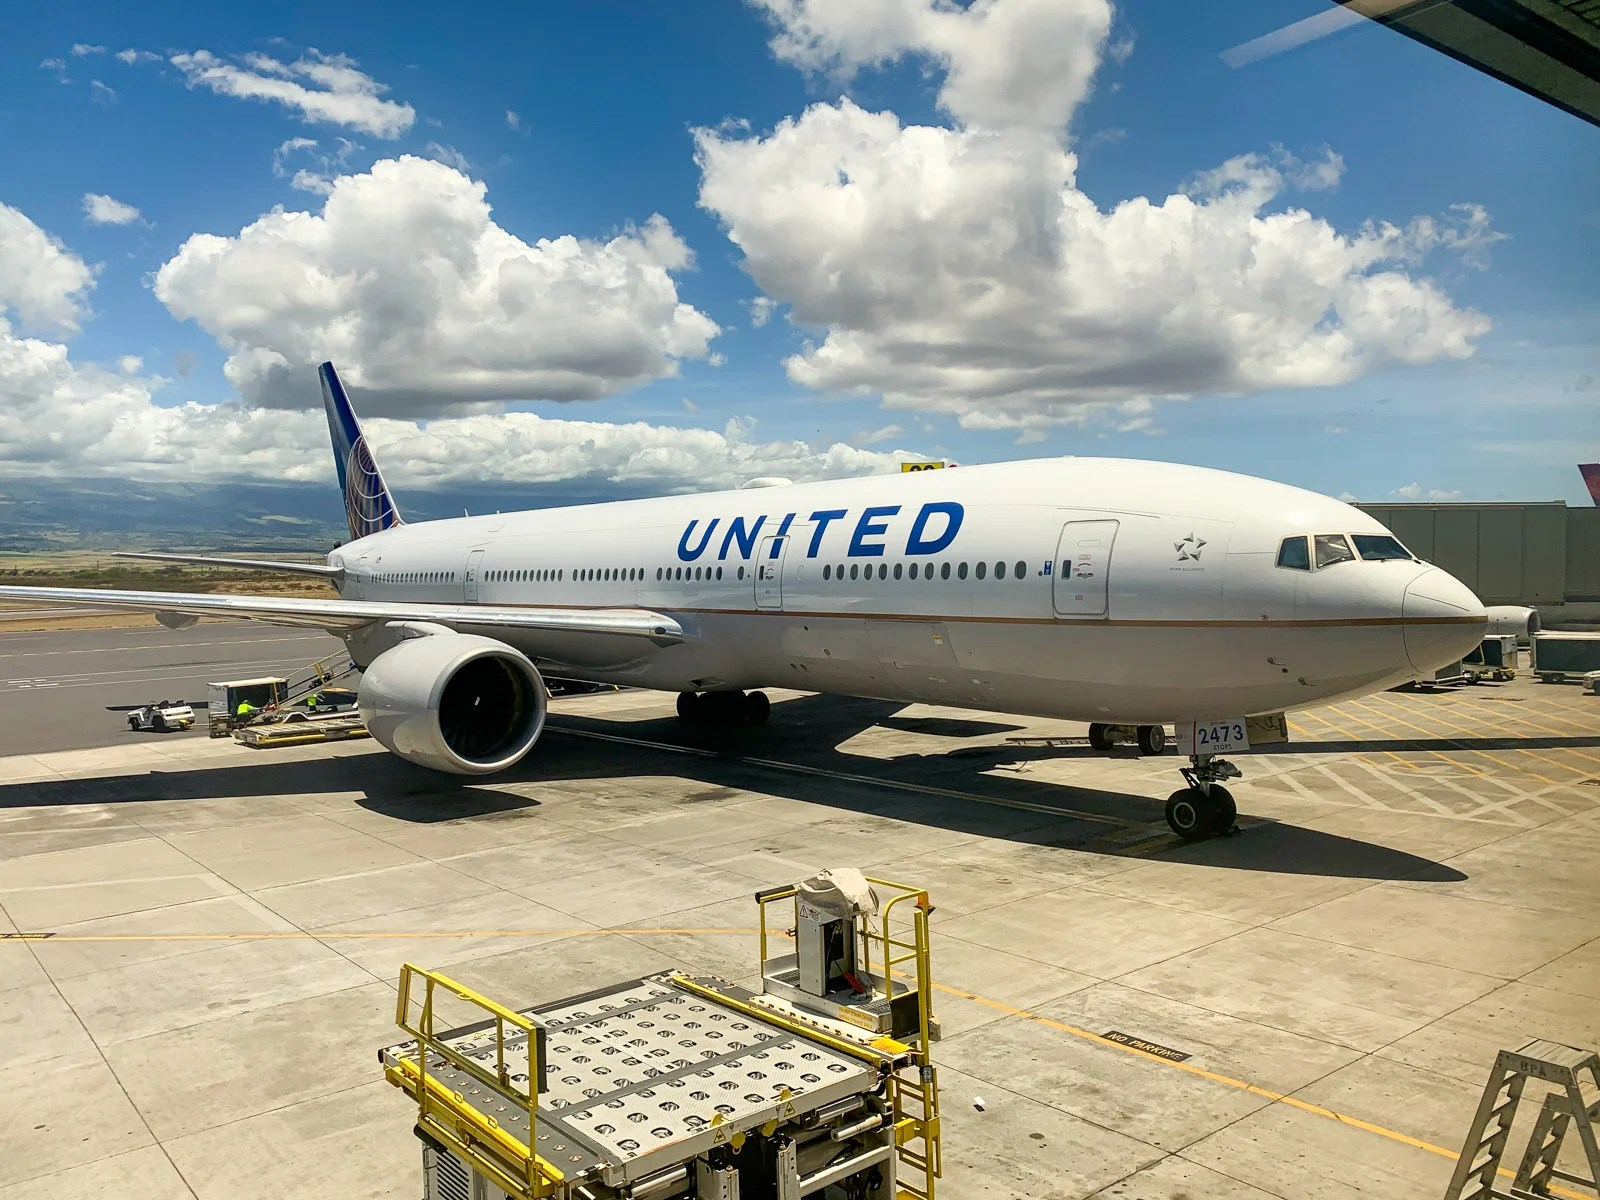 United to offer free sandwiches on more Honolulu flights